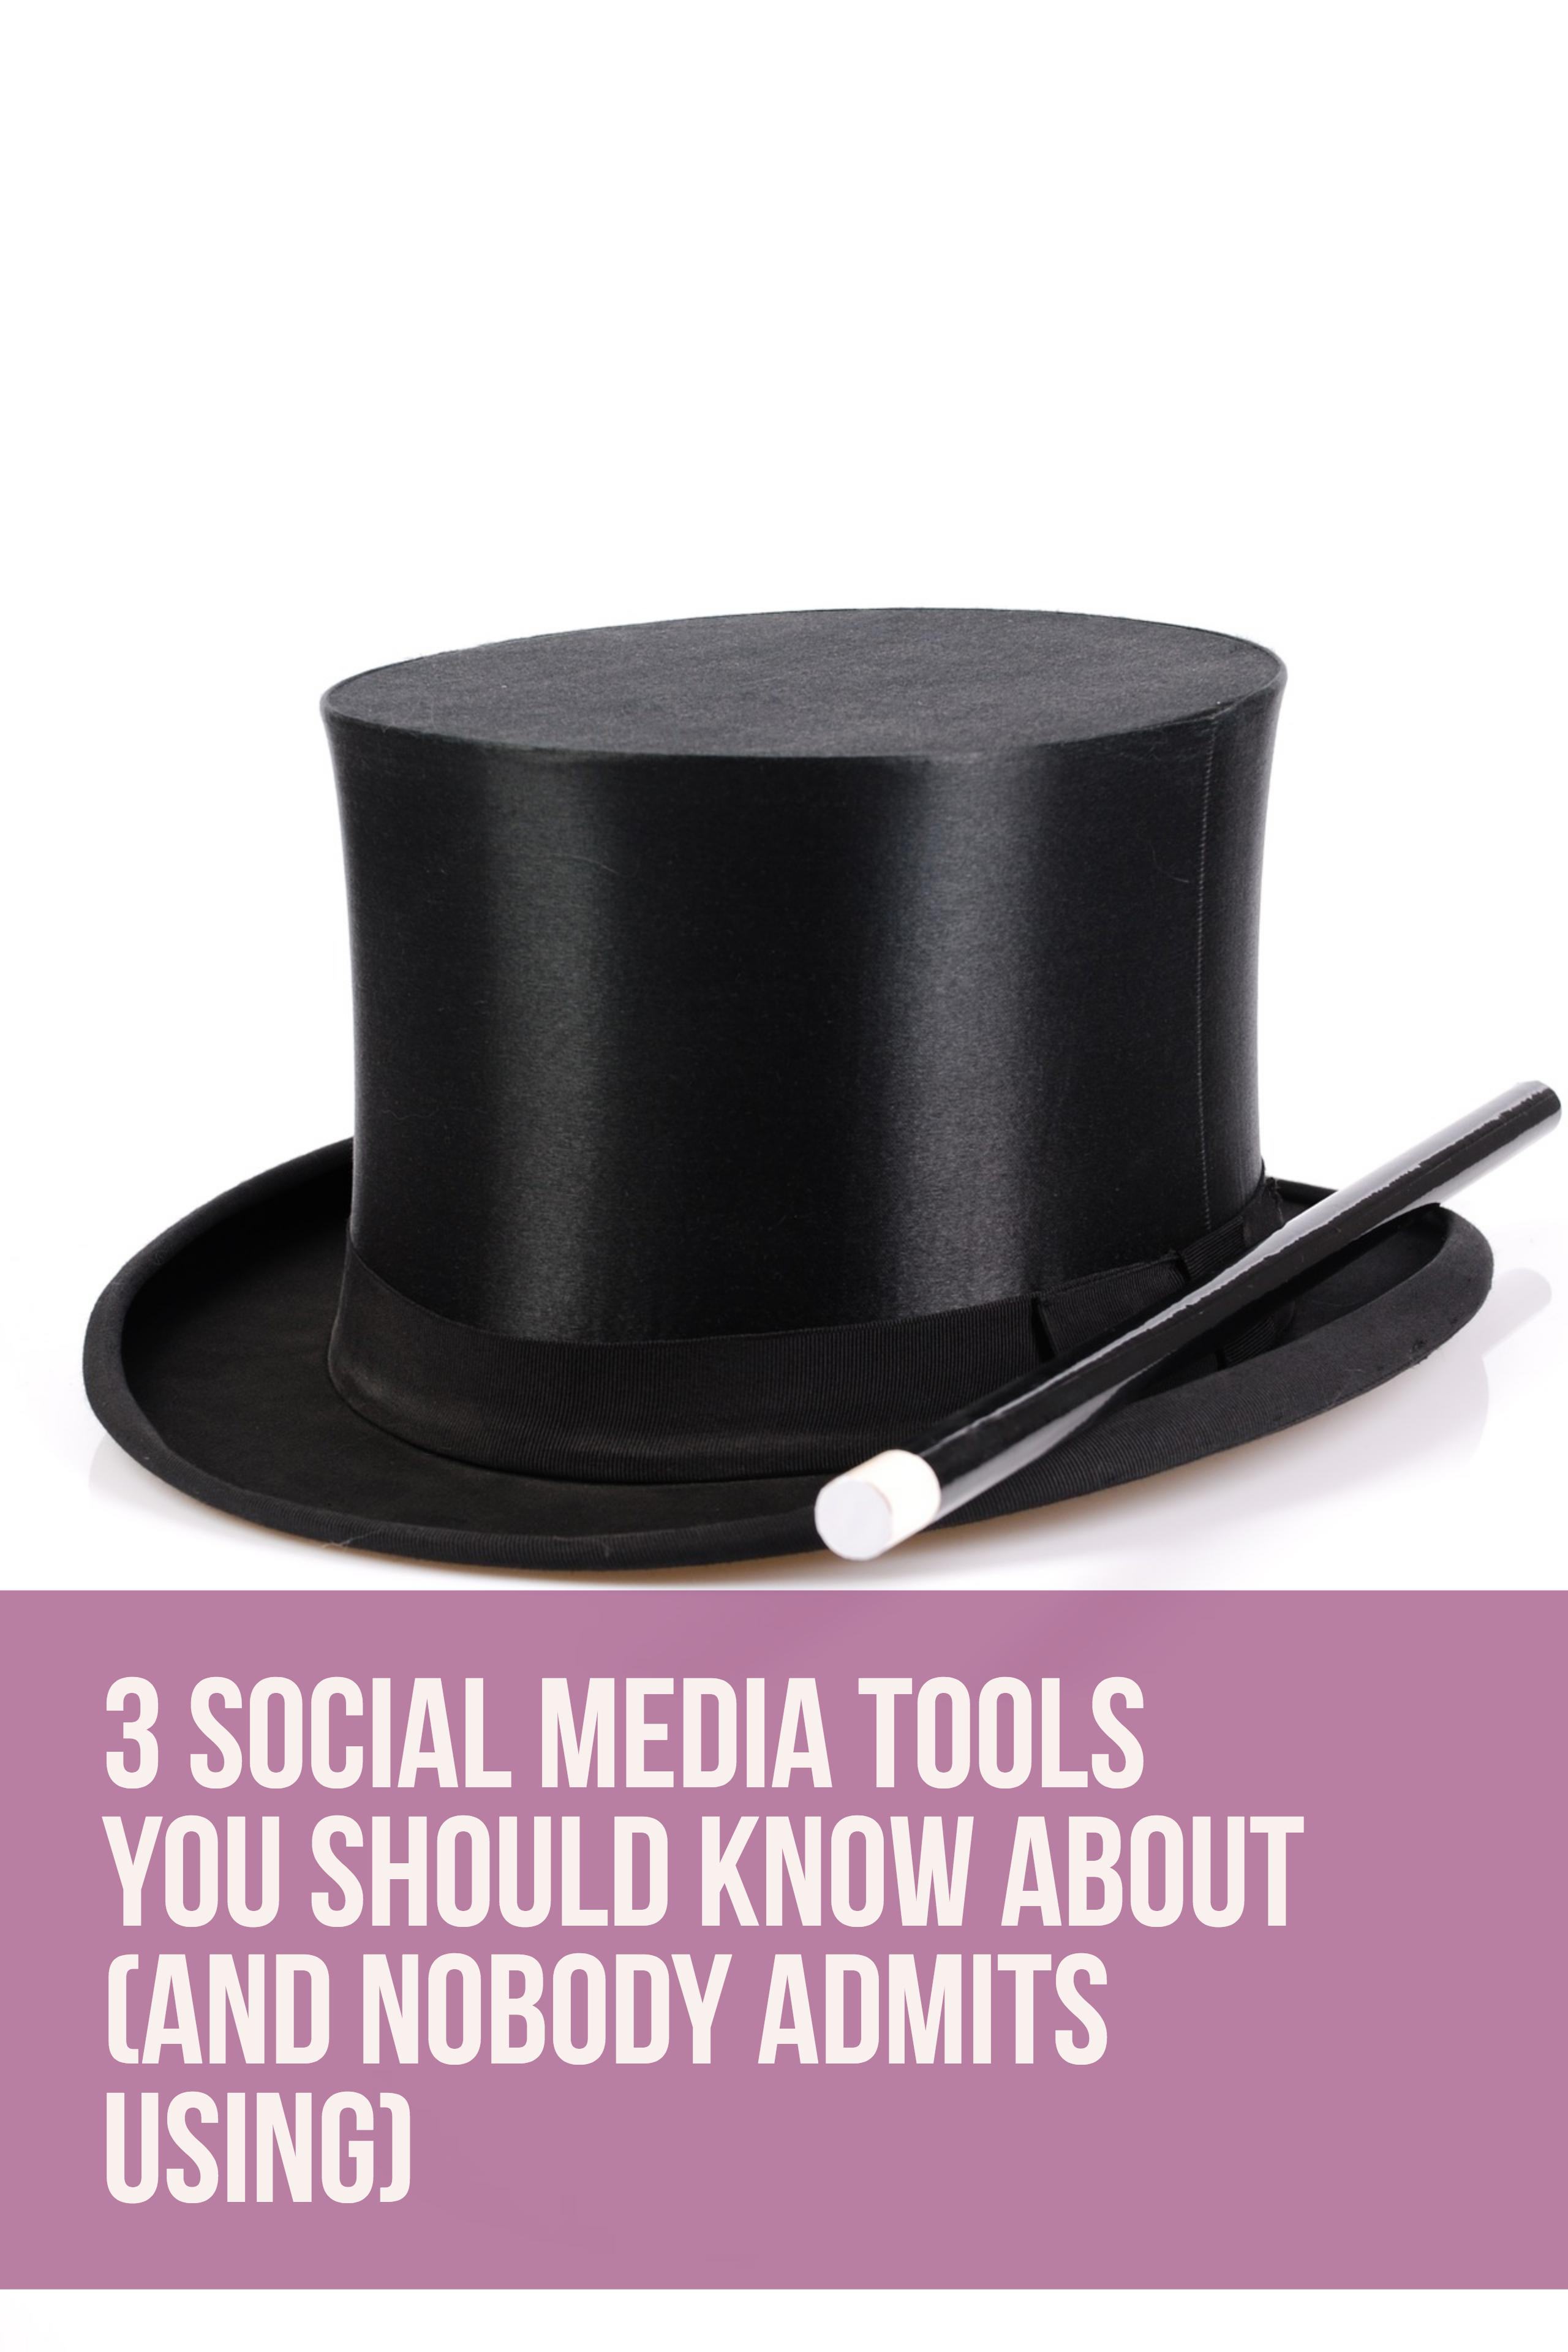 Black Hat social media tools are common - but no one ever admits using them. However, even if you don't use them, you should know what is possible.